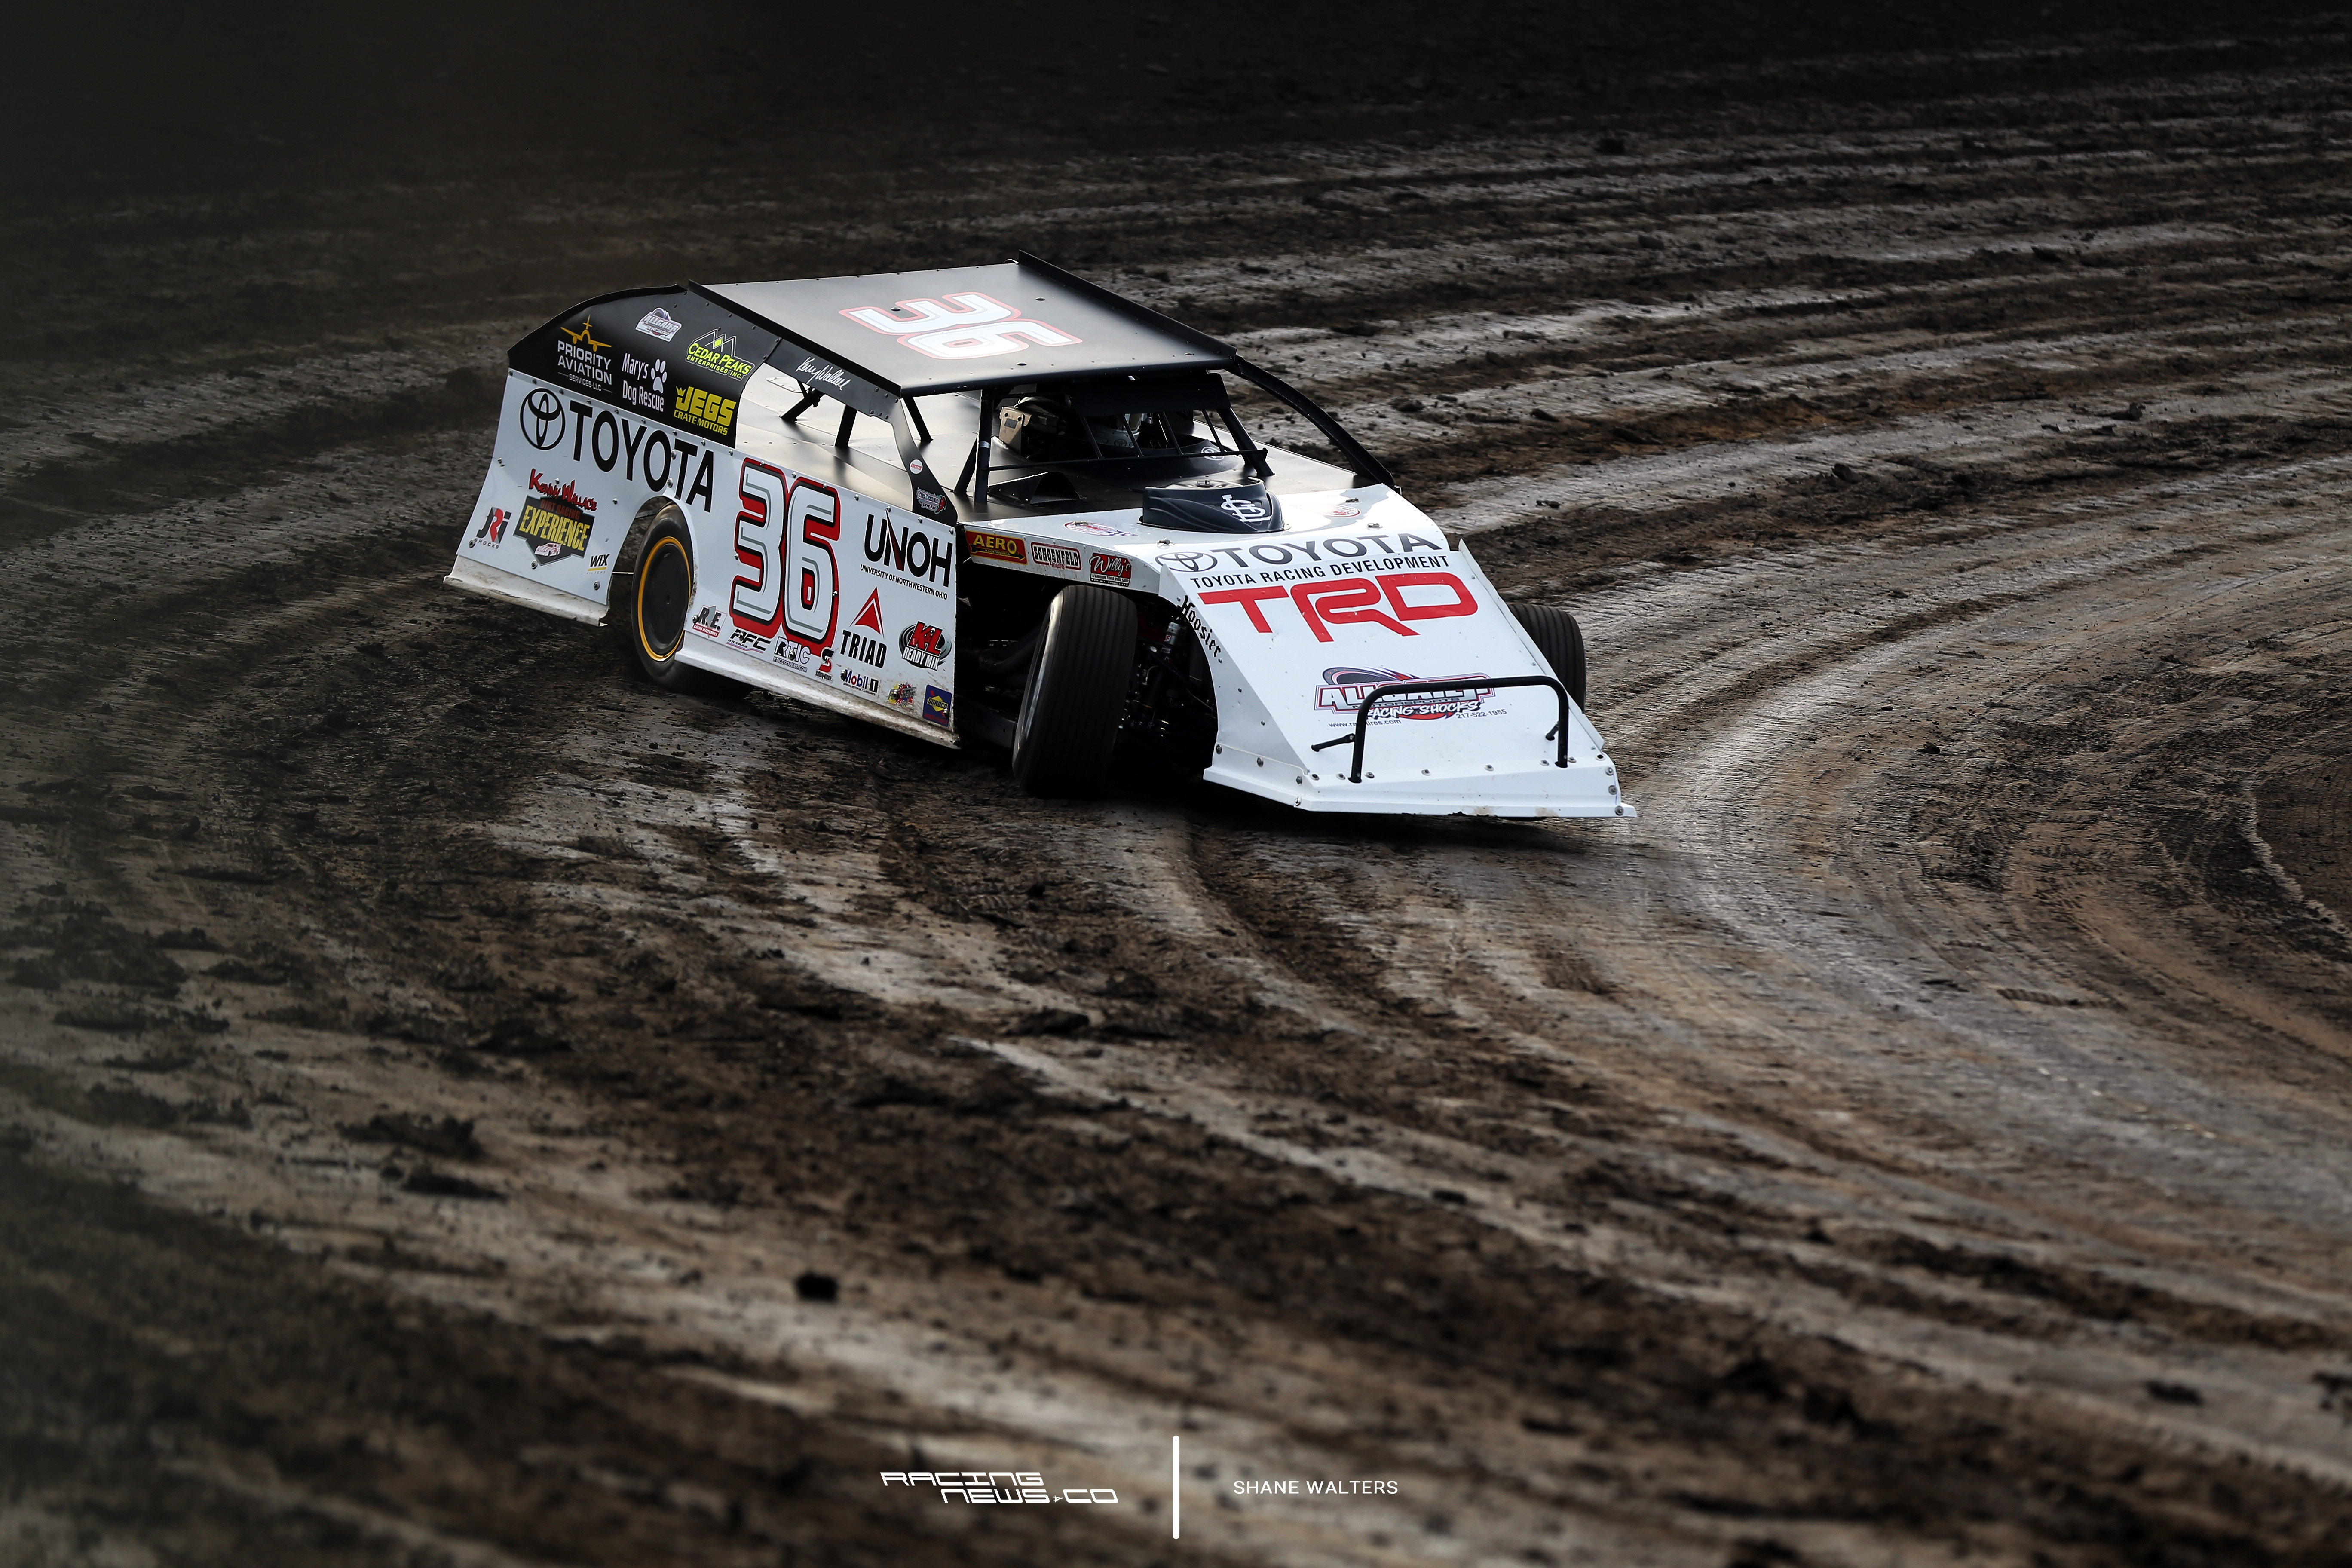 Kenny Wallace Talks Pending Retirement Plans And Dirt Racing If the answer is no to many times then change your life because. https racingnews co 2017 07 02 kenny wallace retirement planned dirt racing